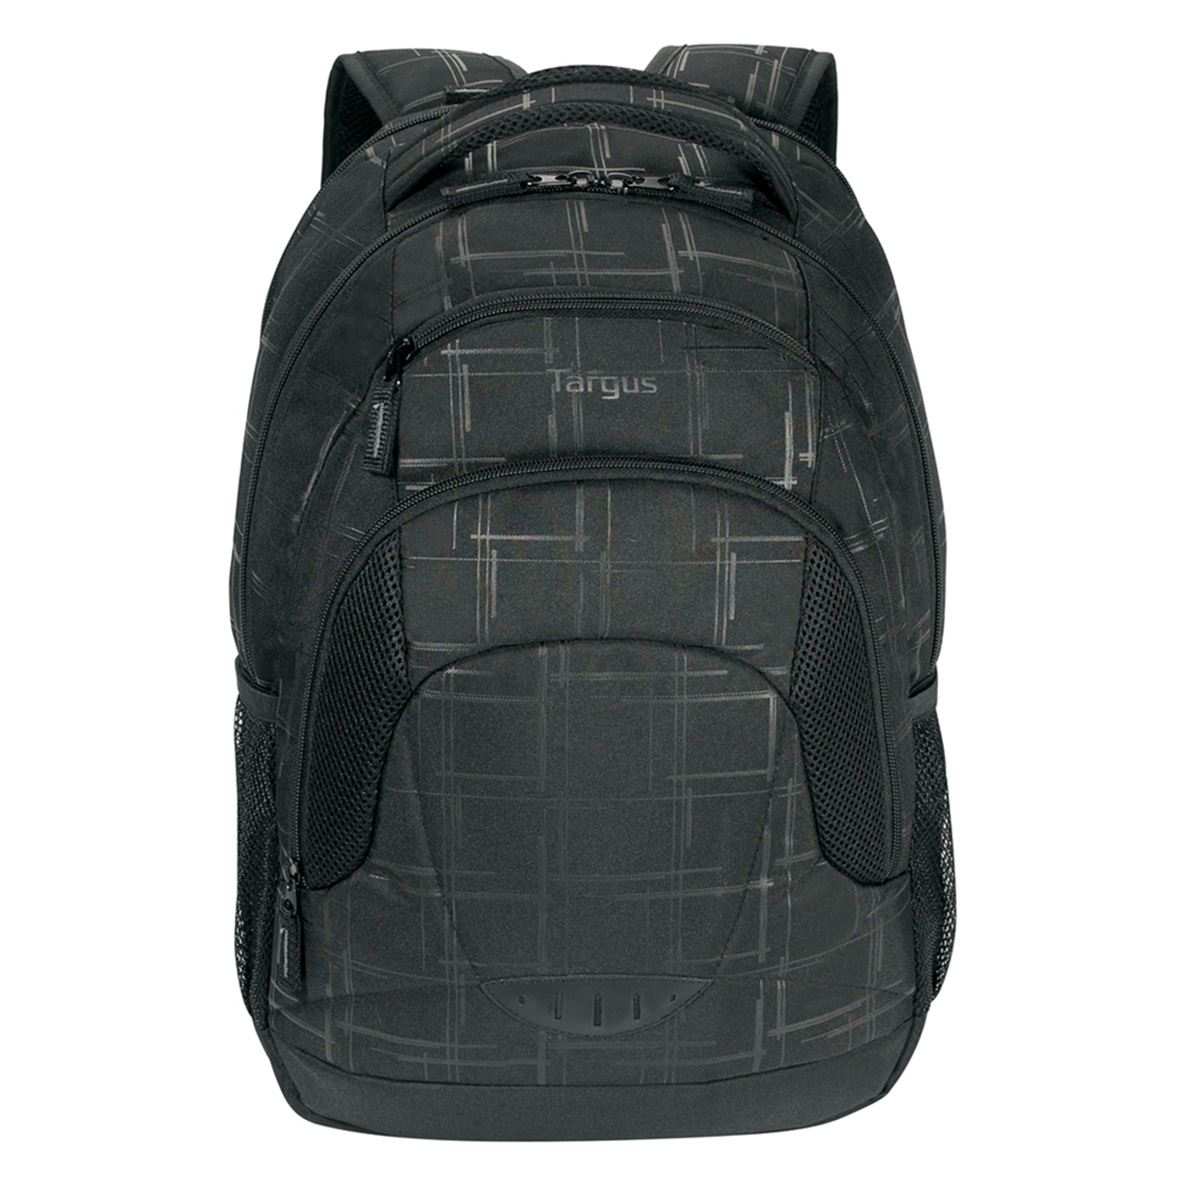 "Targus Matrix Sport 16"" Laptop Backpack - Black"